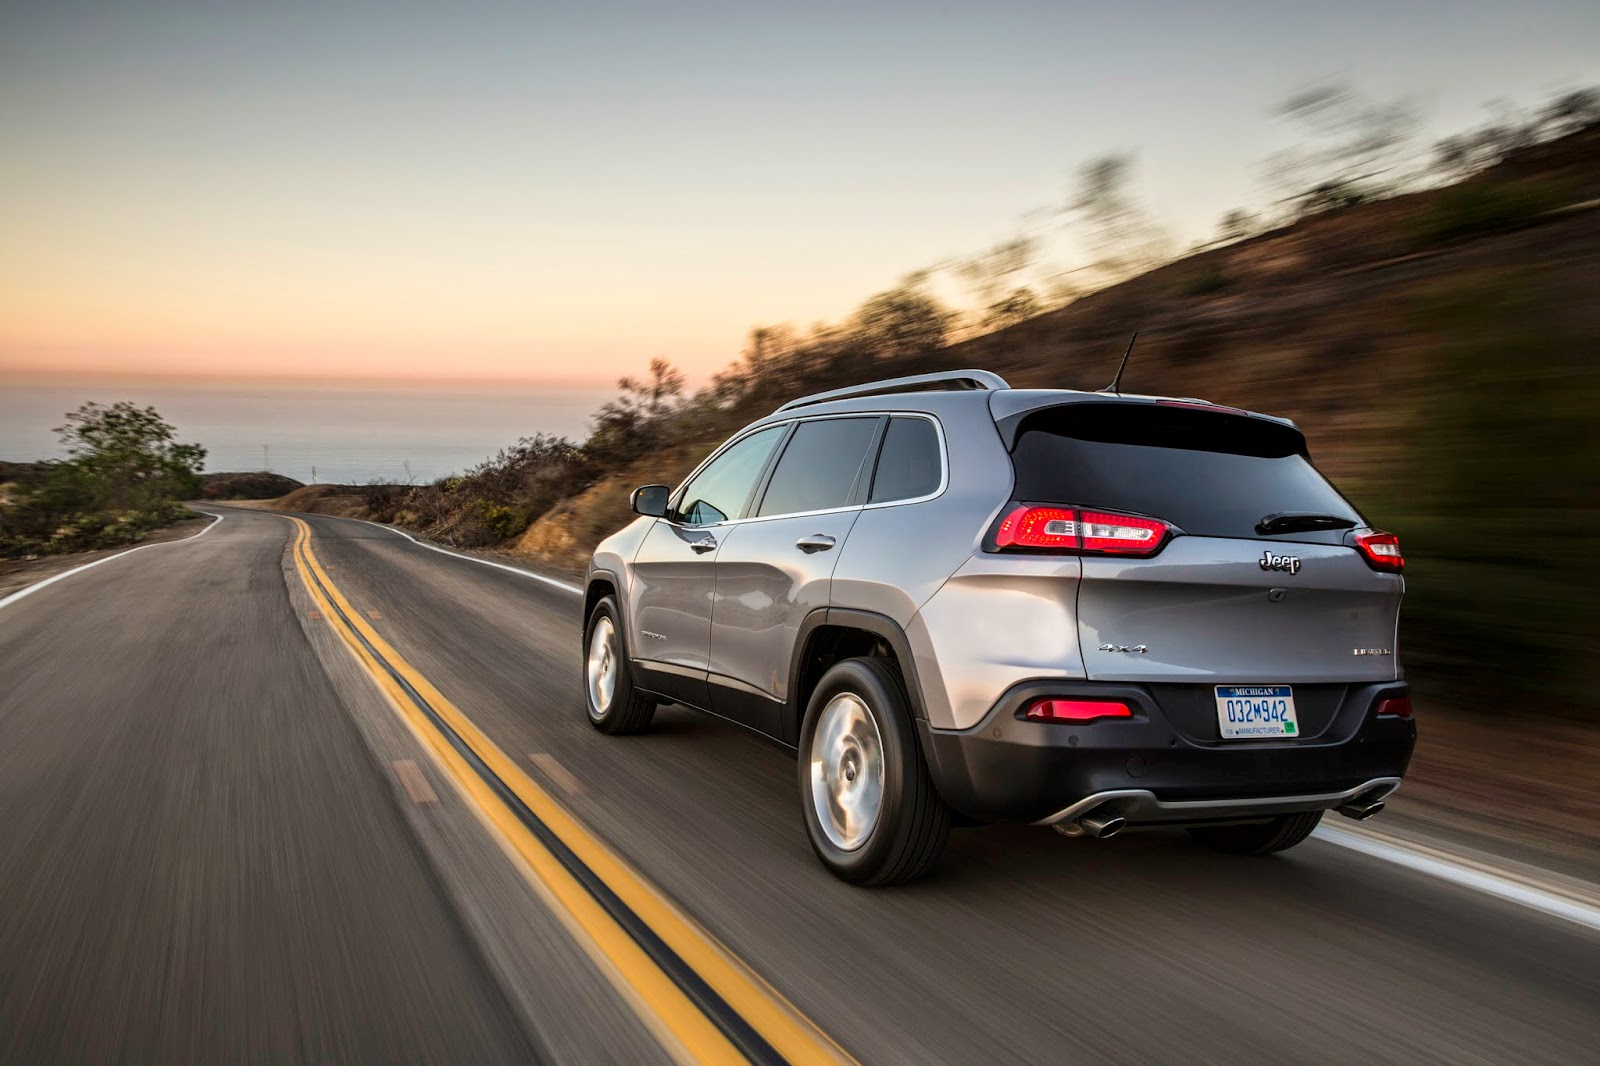 Rear 3/4 view of the 2014 Jeep Cherokee